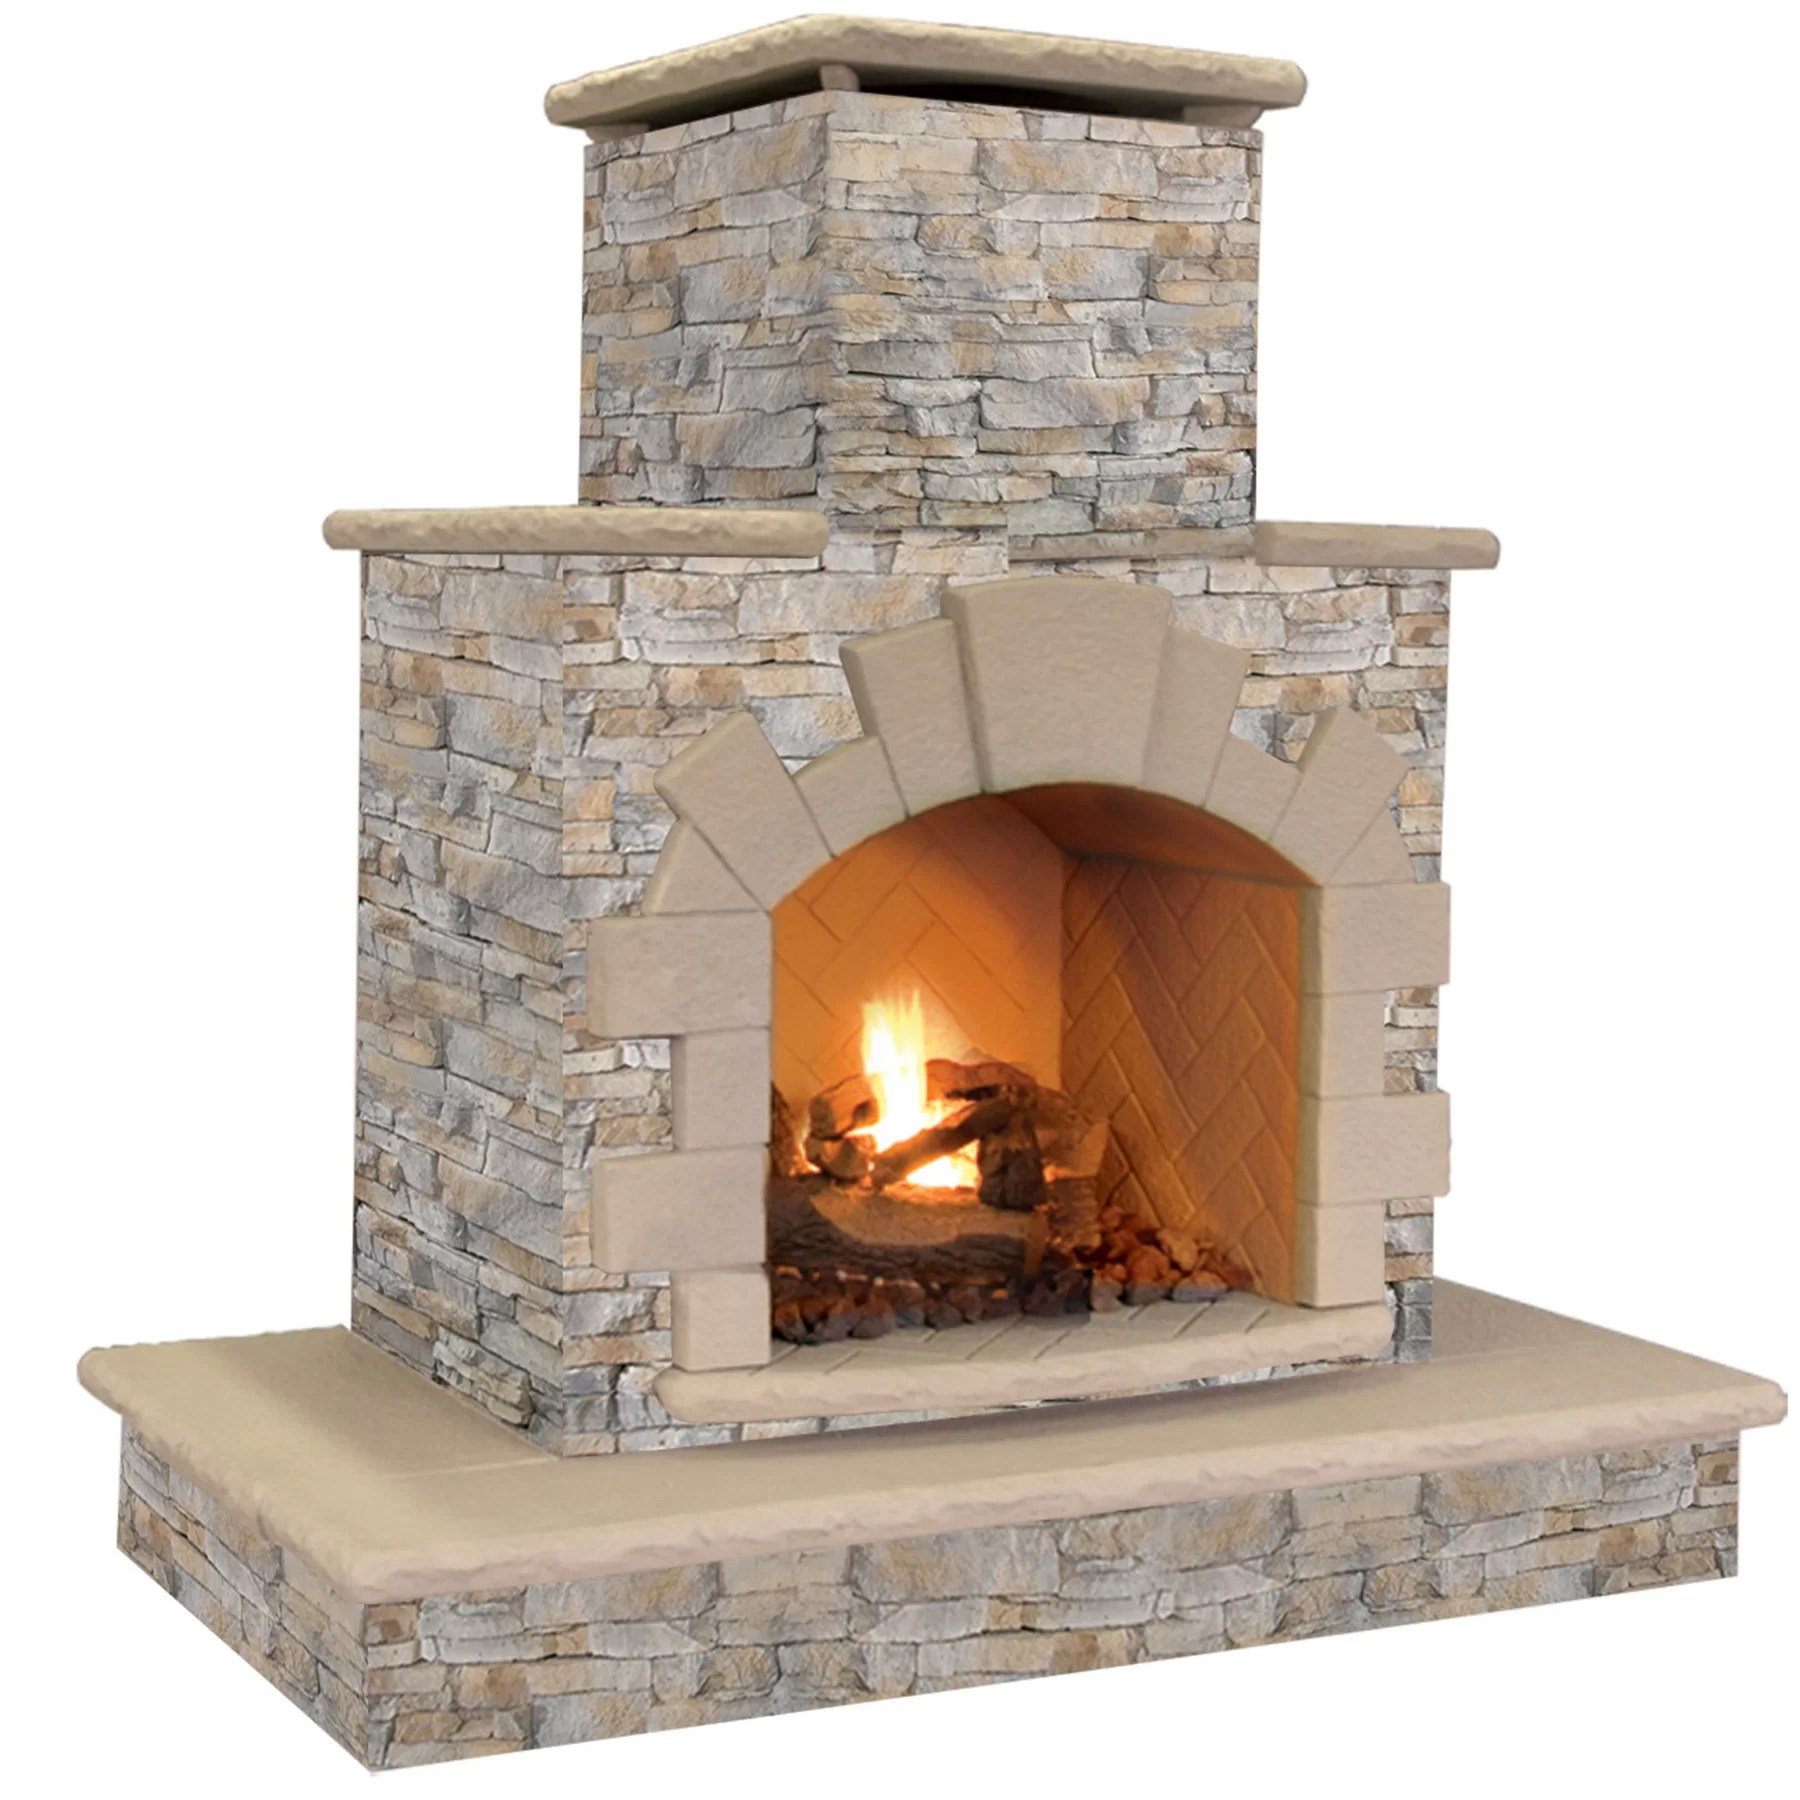 CalFlame Natural Stone Propane / Gas Outdoor Fireplace ... on Outdoor Gas Fireplace For Deck id=64308